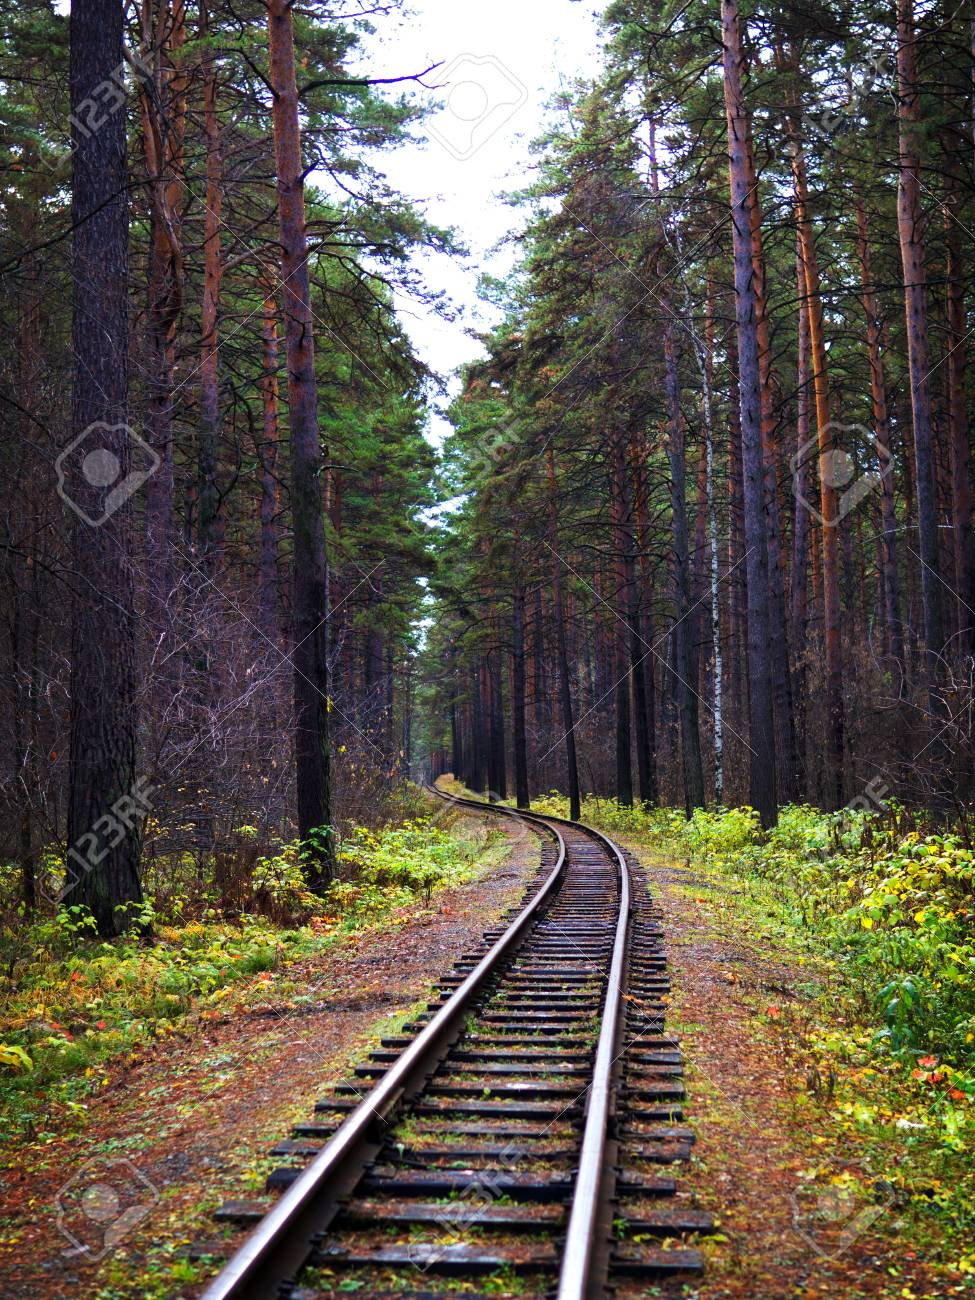 View along the railway. Game of summer and autumn colors. Tall trees. - 89517194